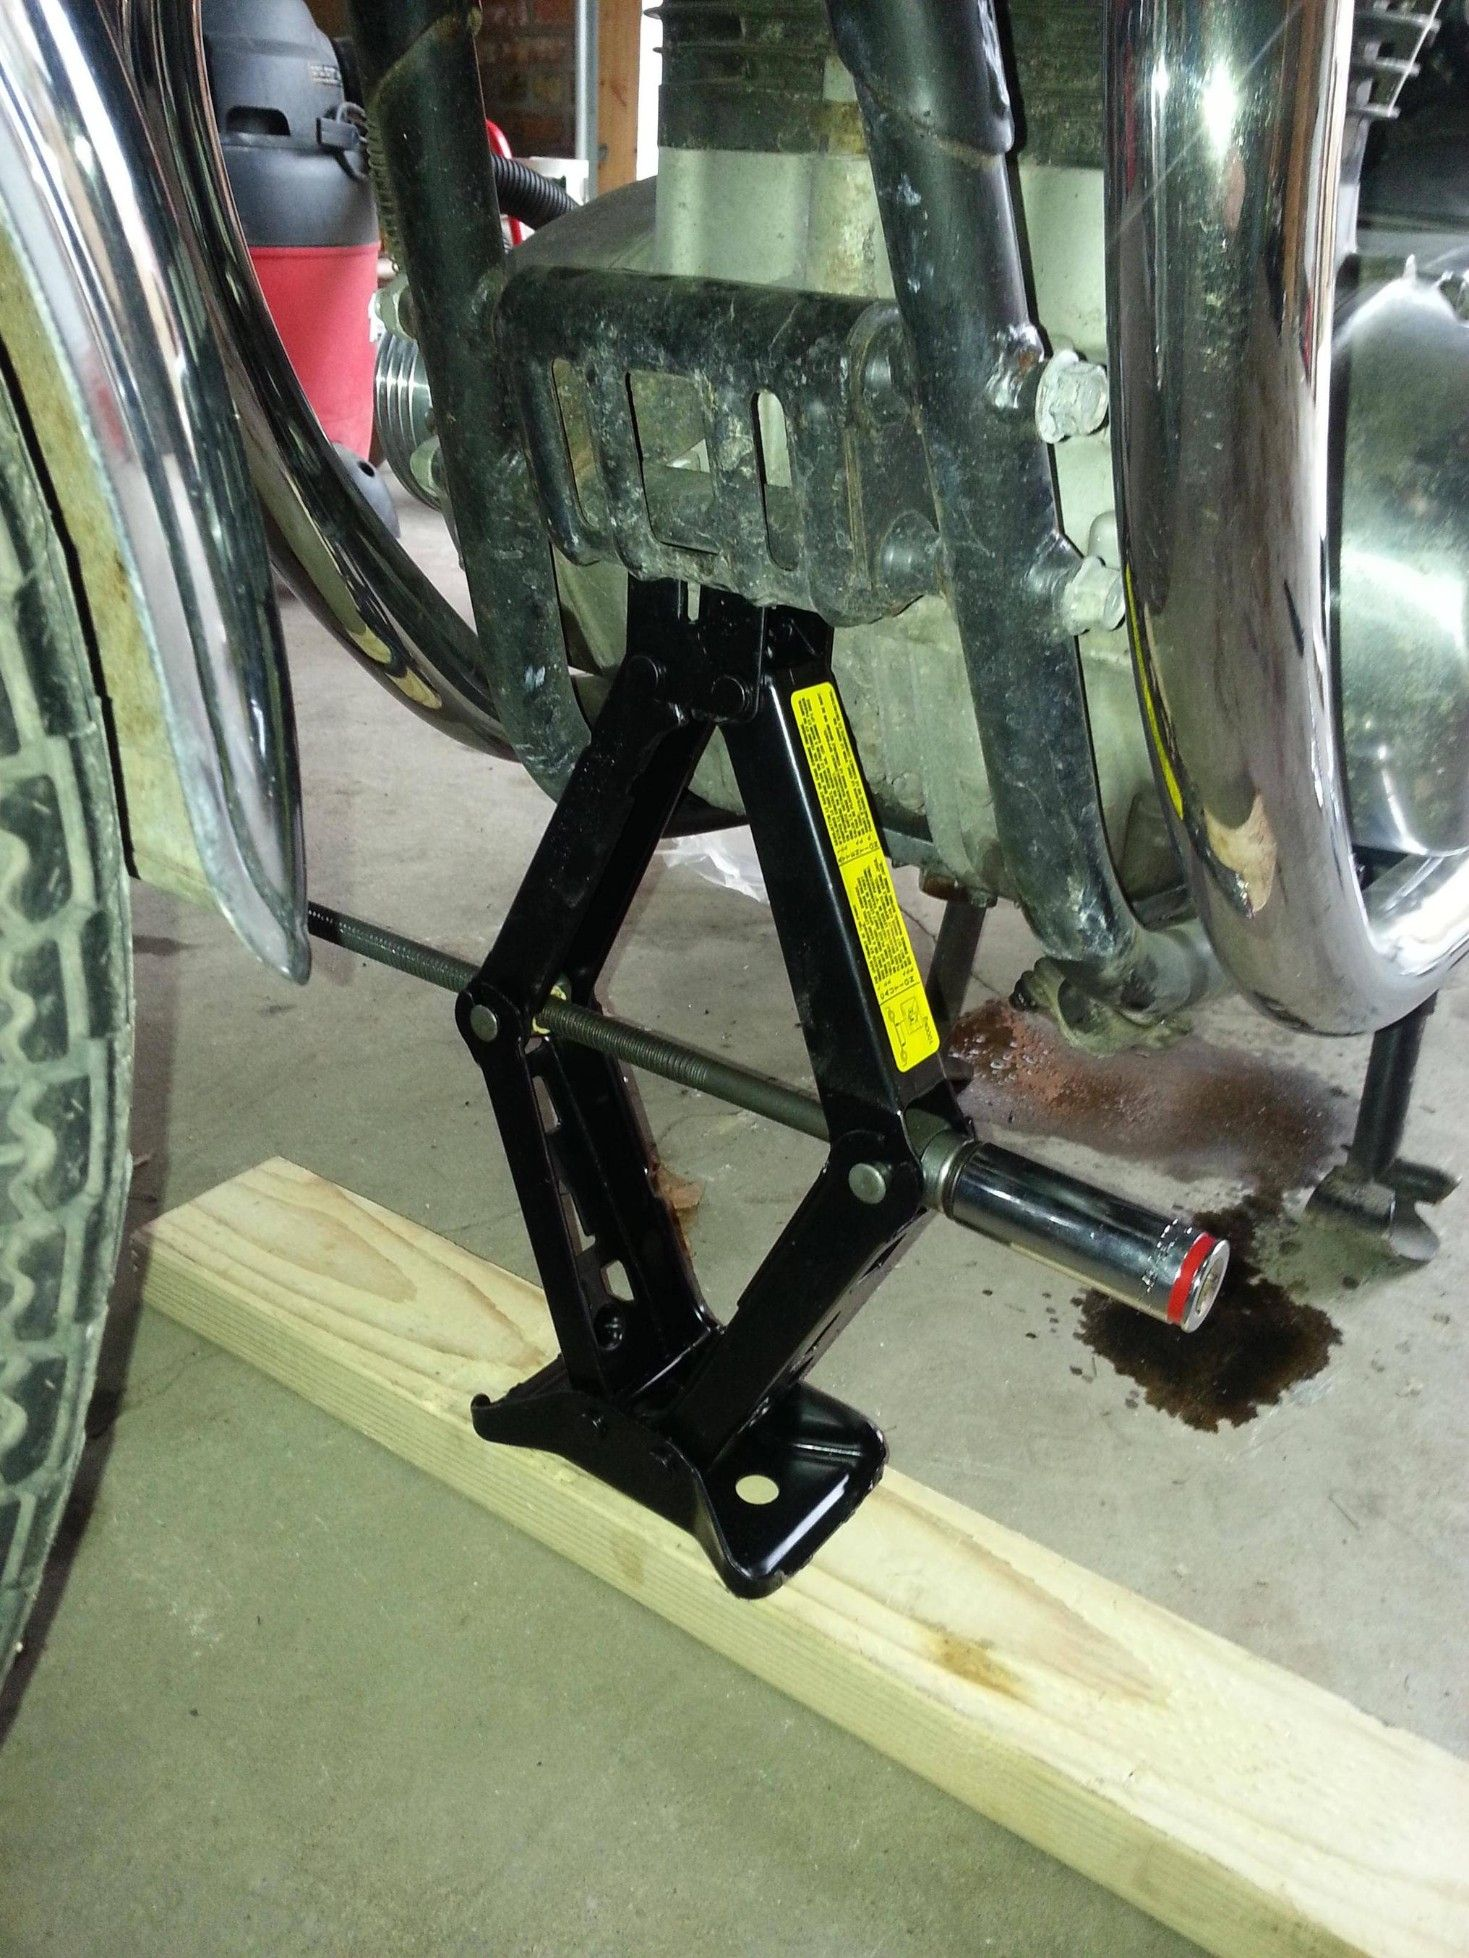 Motorcycle Front Lift By Fyl1982 Homemade Setup Consisting Of A Scissors Jack Arranged To Bear Against The Bike S Engine